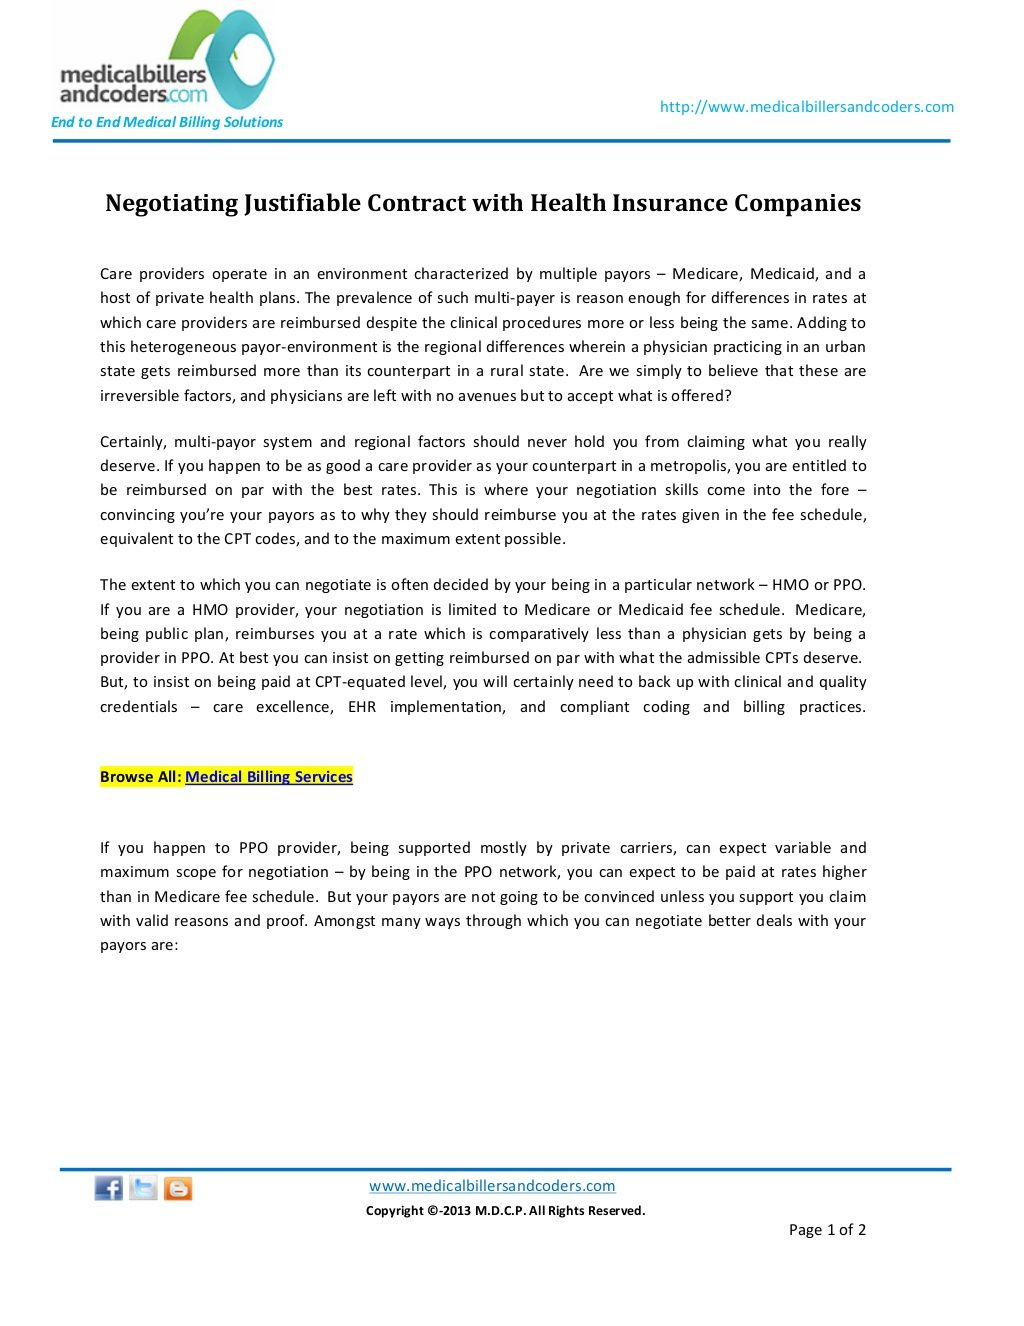 Negotiating Justifiablecontractwithhealthinsurancecompanies By